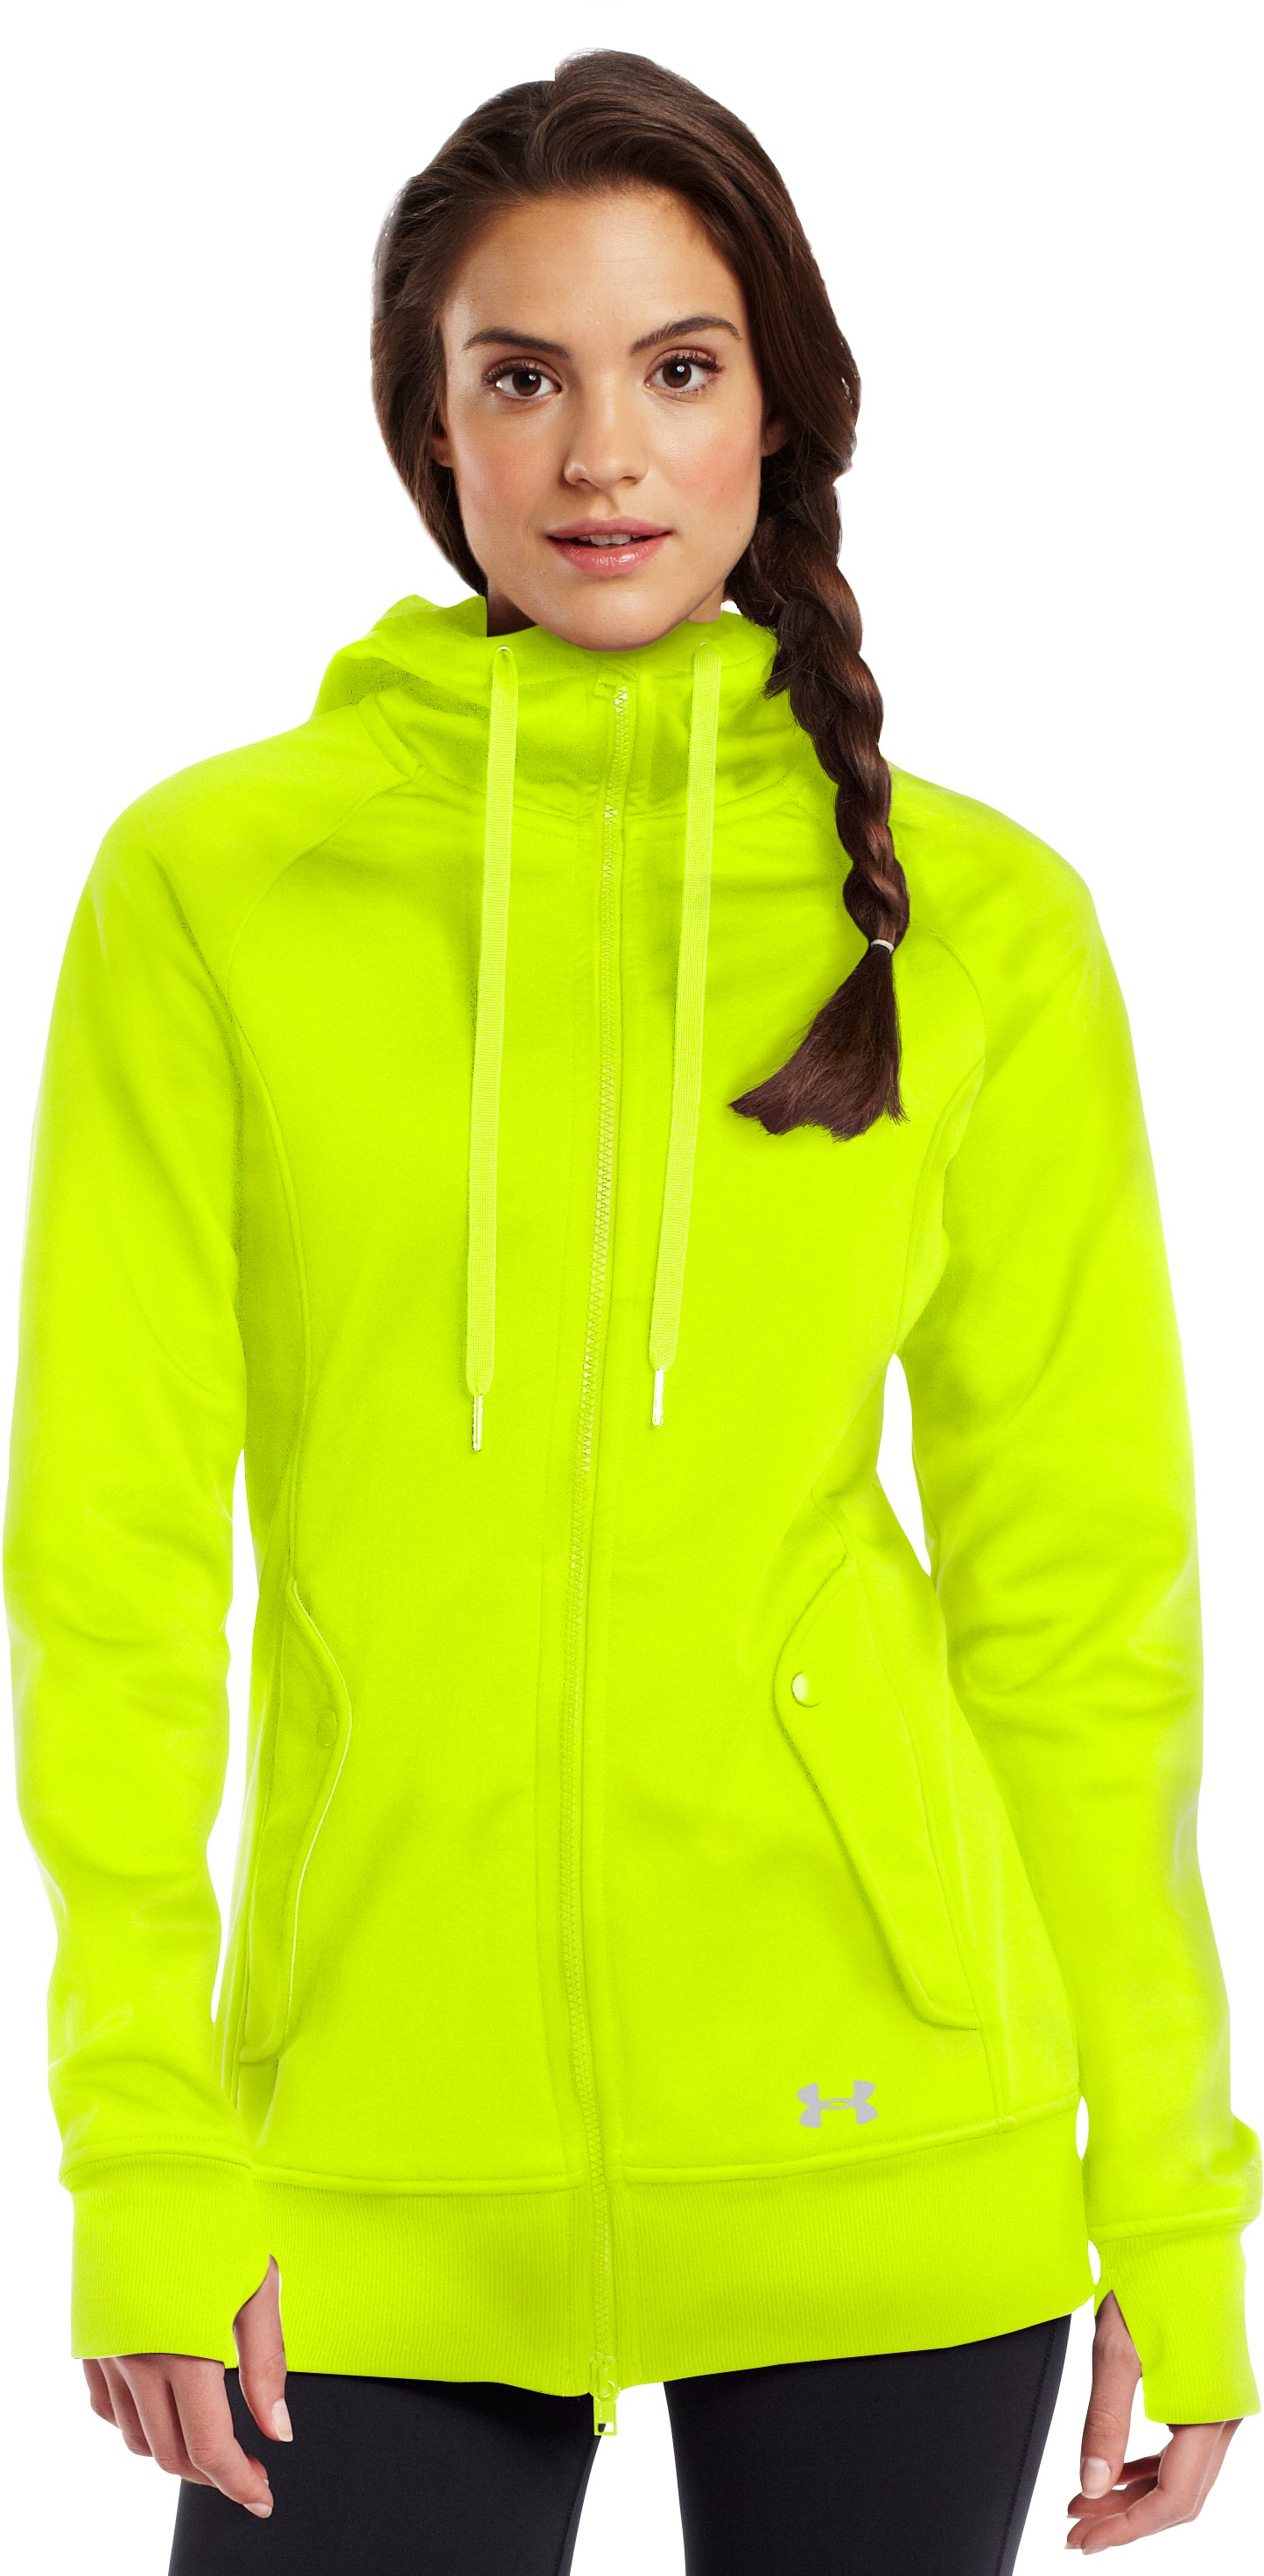 Women's ColdGear® Infrared Softershell, High-Vis Yellow, Front